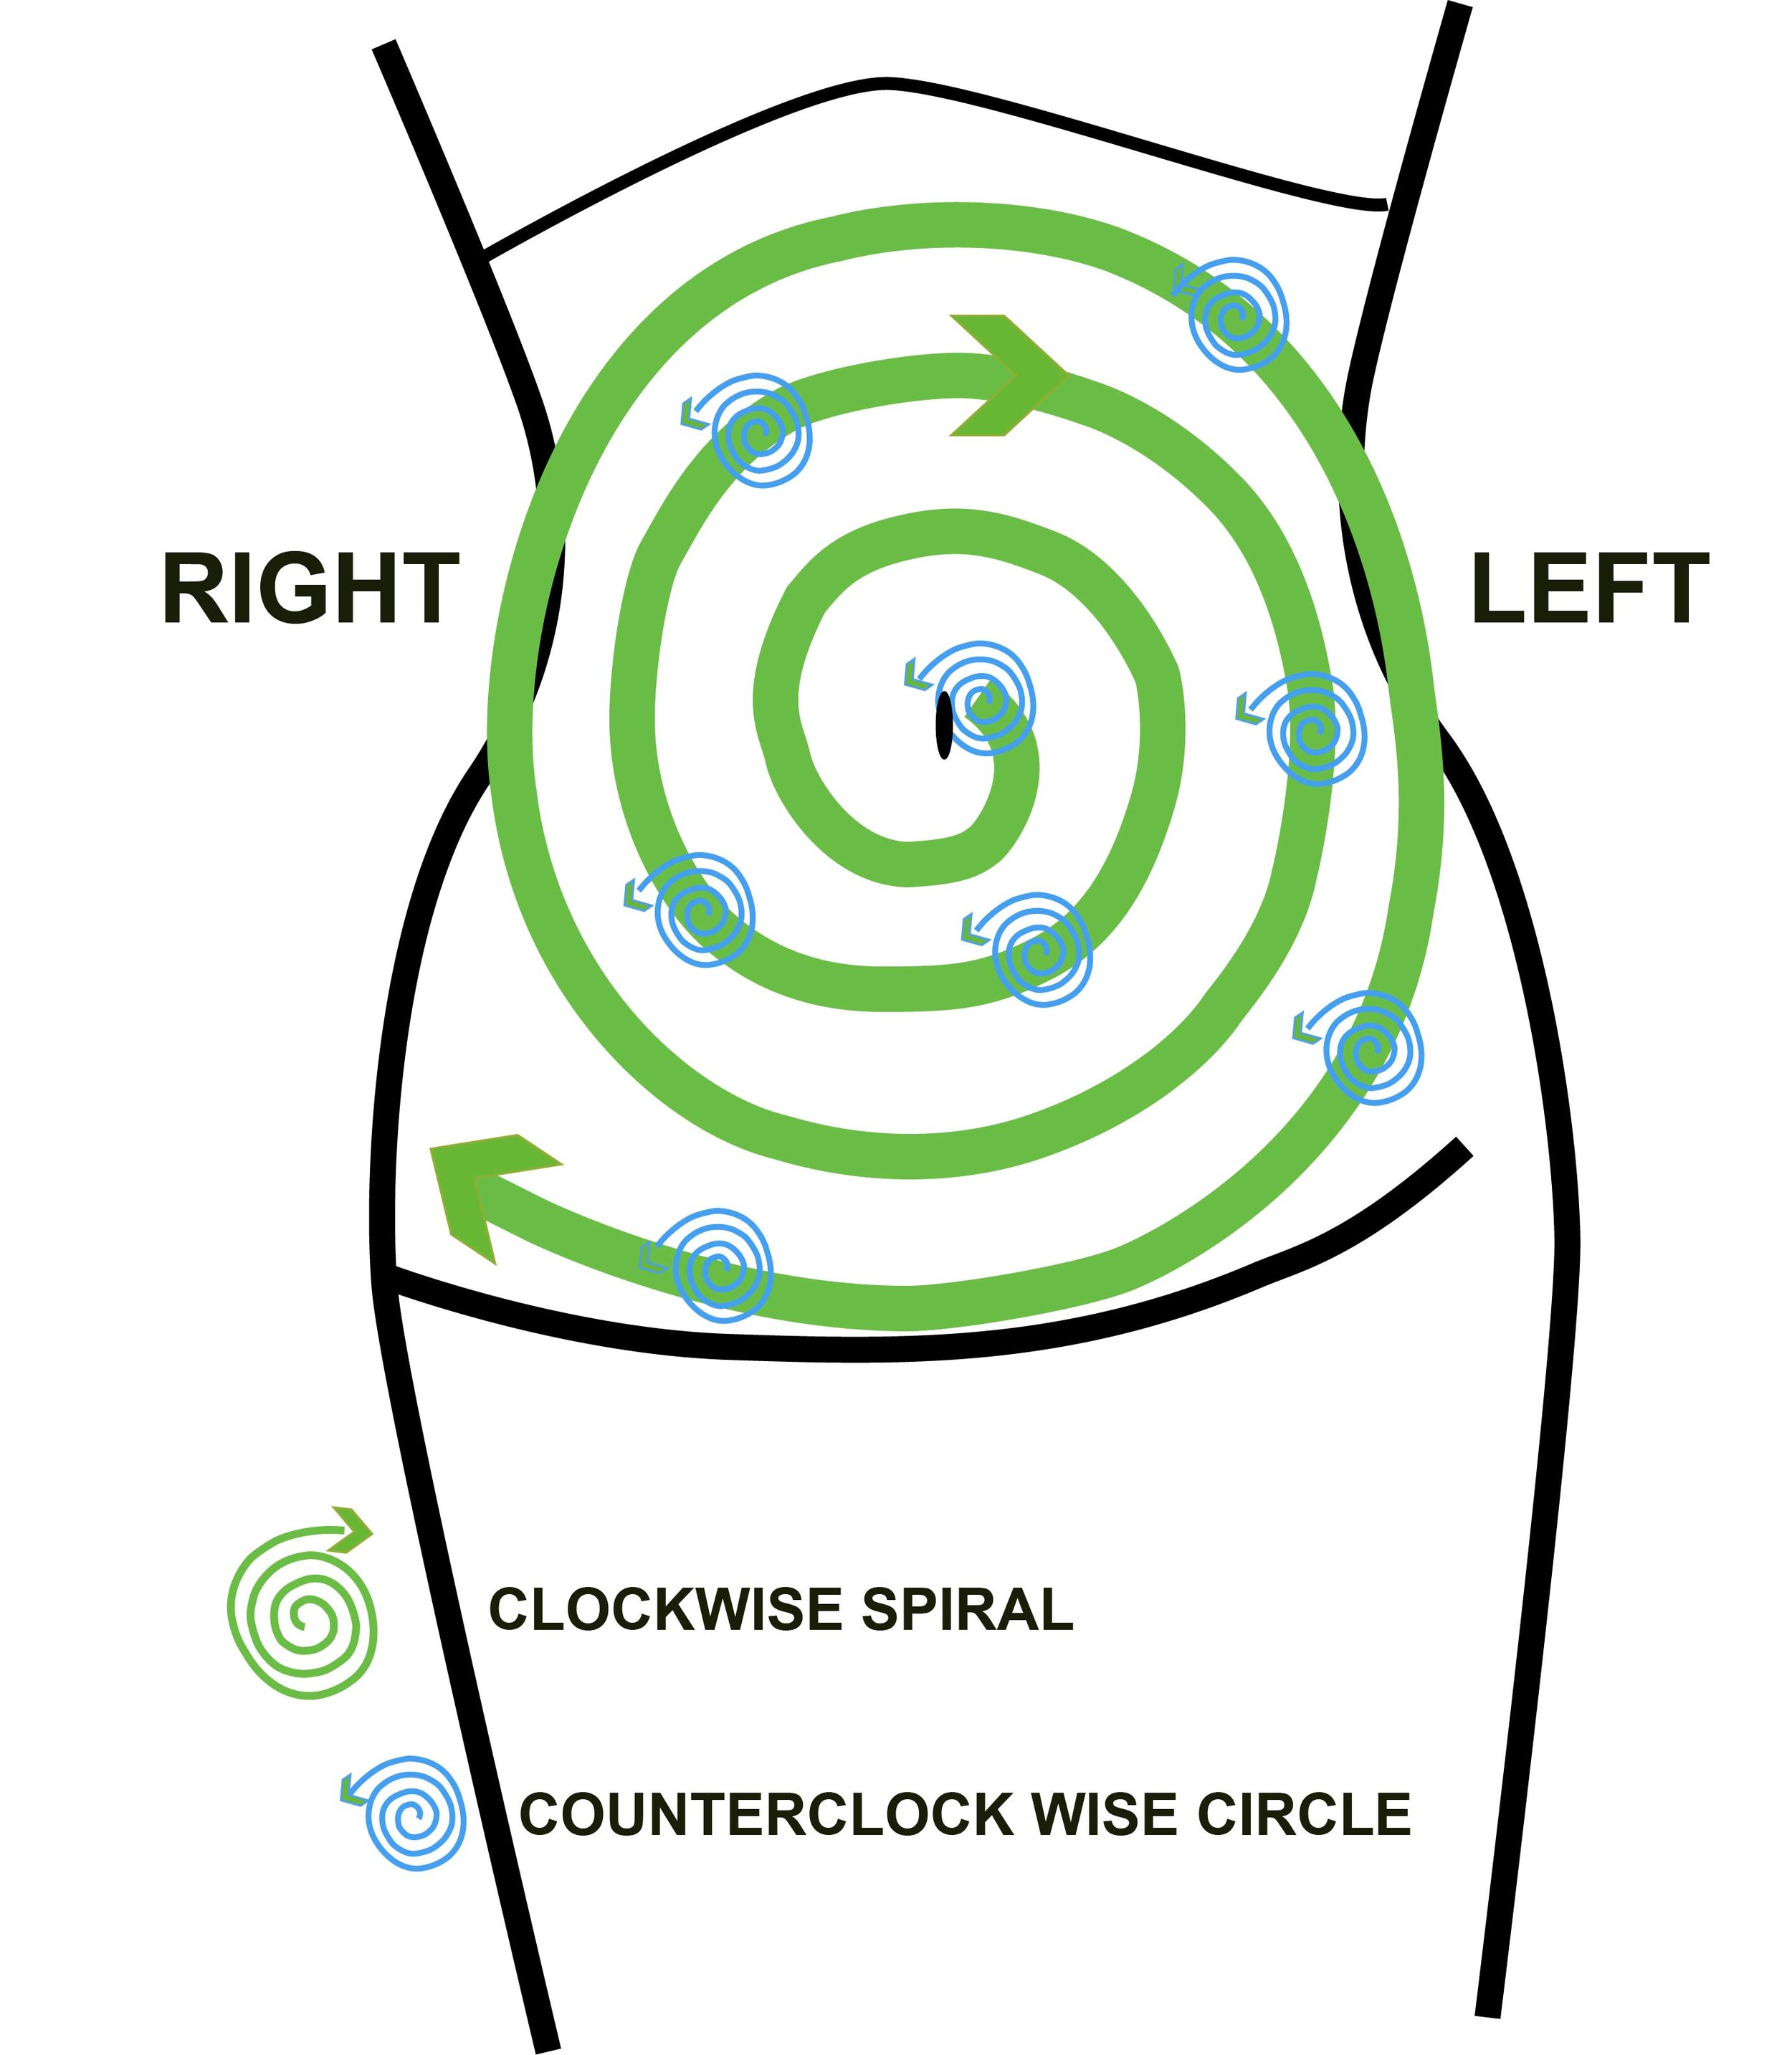 Instructions - *Prepare the belly with some oil and start above the naval.*Sink in with the finger ,using the finger pads and make circles counter clock wise.*Move from one point to the other in a clockwise spiral. When you feel tension, shake or vibrate. End at the right hip.Remember the big spiral is clockwise (green) and the finger circle is counter clock wise. (blue small spiral)